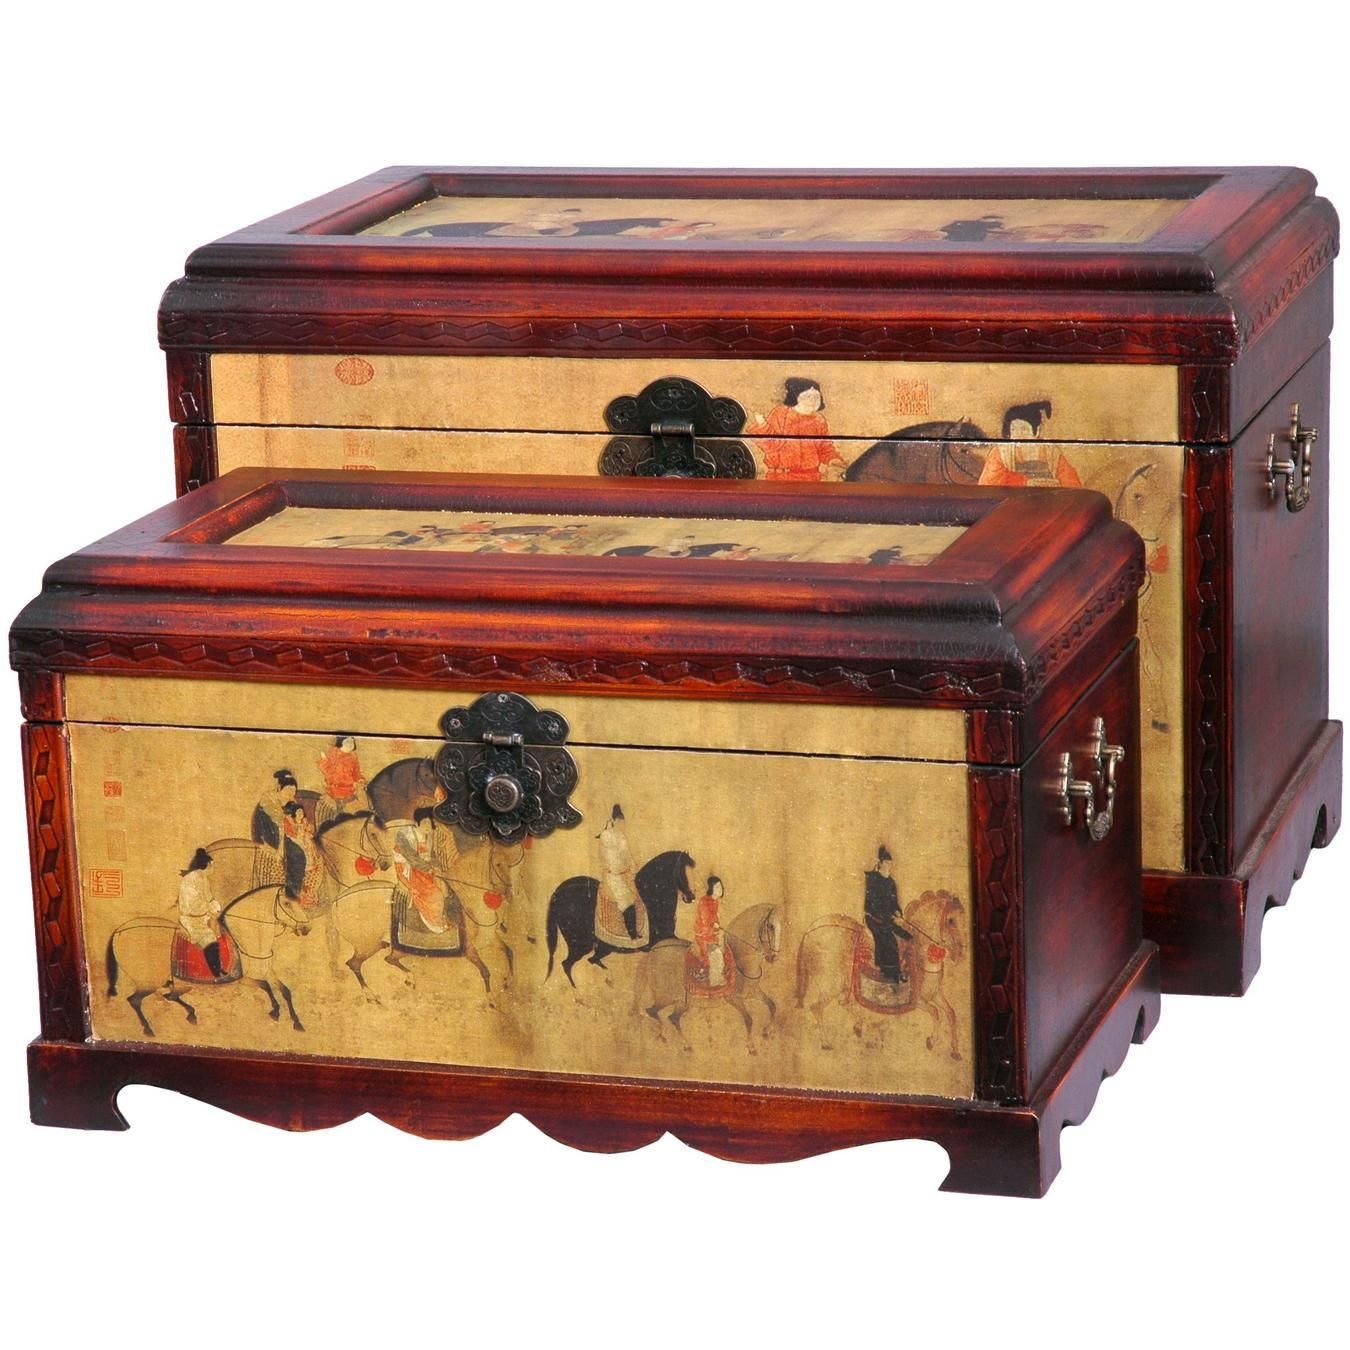 Ordinaire Galloping Horses Storage Boxes (Set Of Two)   OrientalFurniture.com